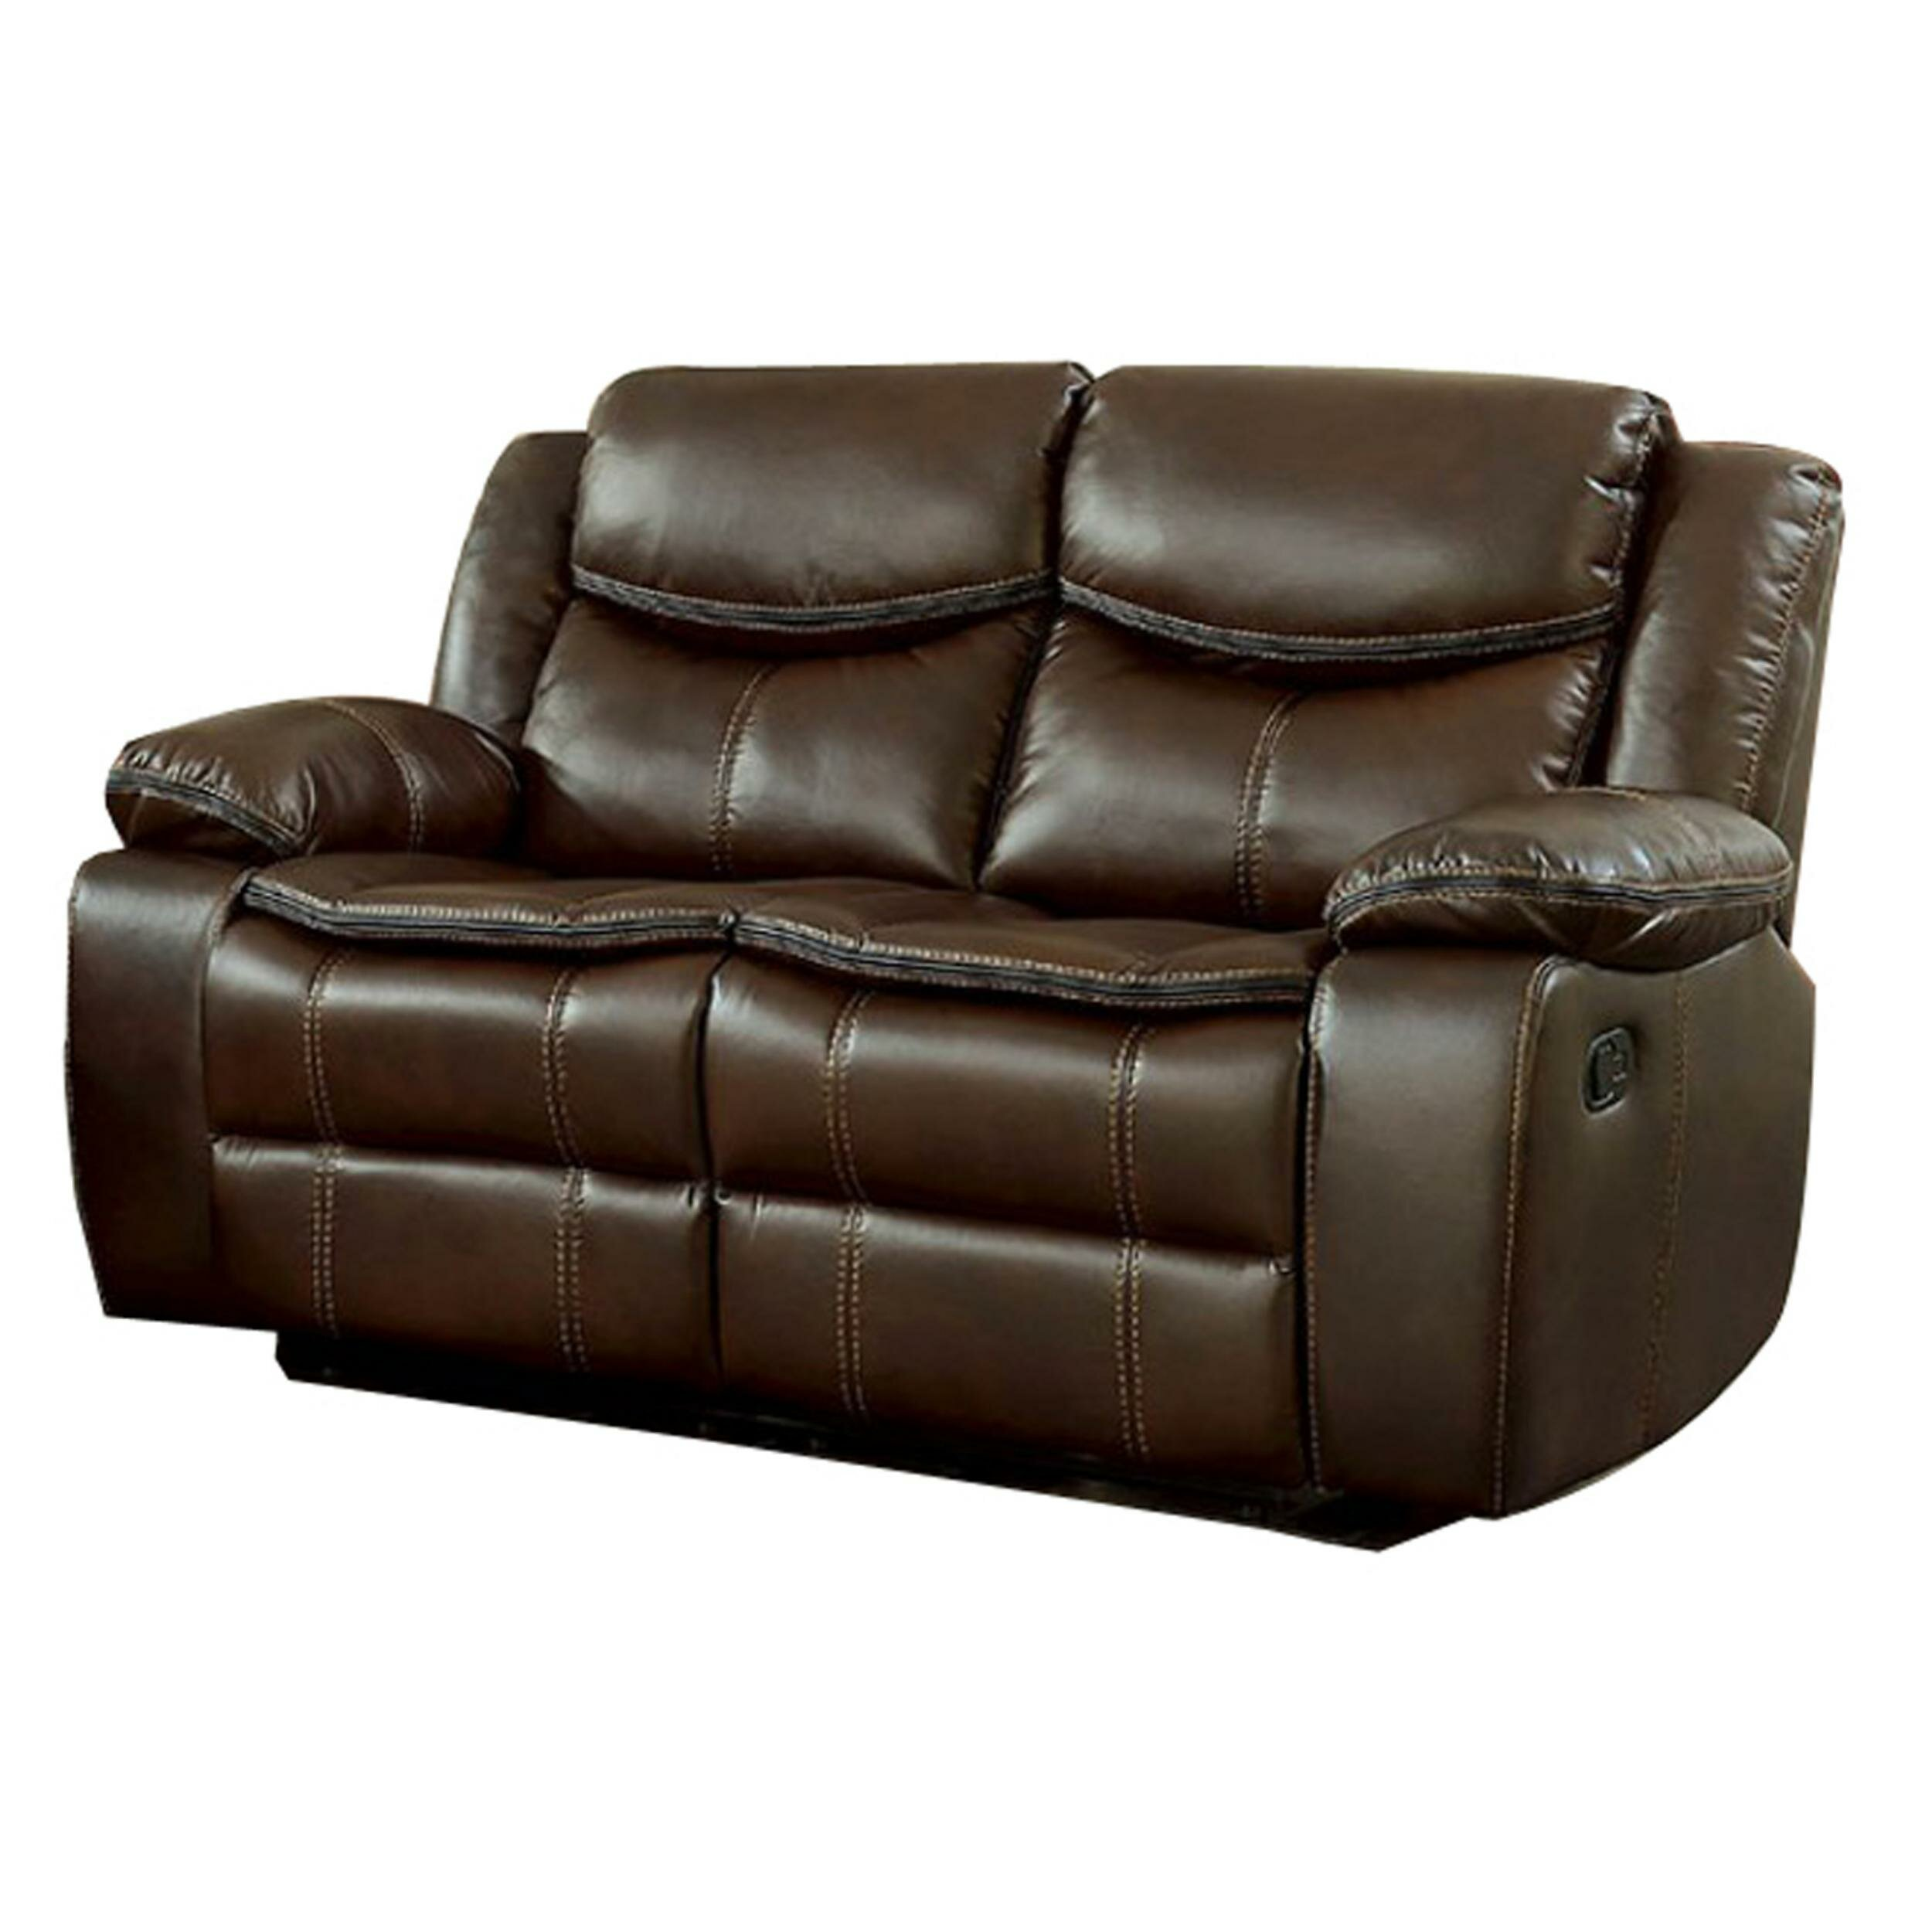 Groovy Helmer Leather Reclining Loveseat Pabps2019 Chair Design Images Pabps2019Com